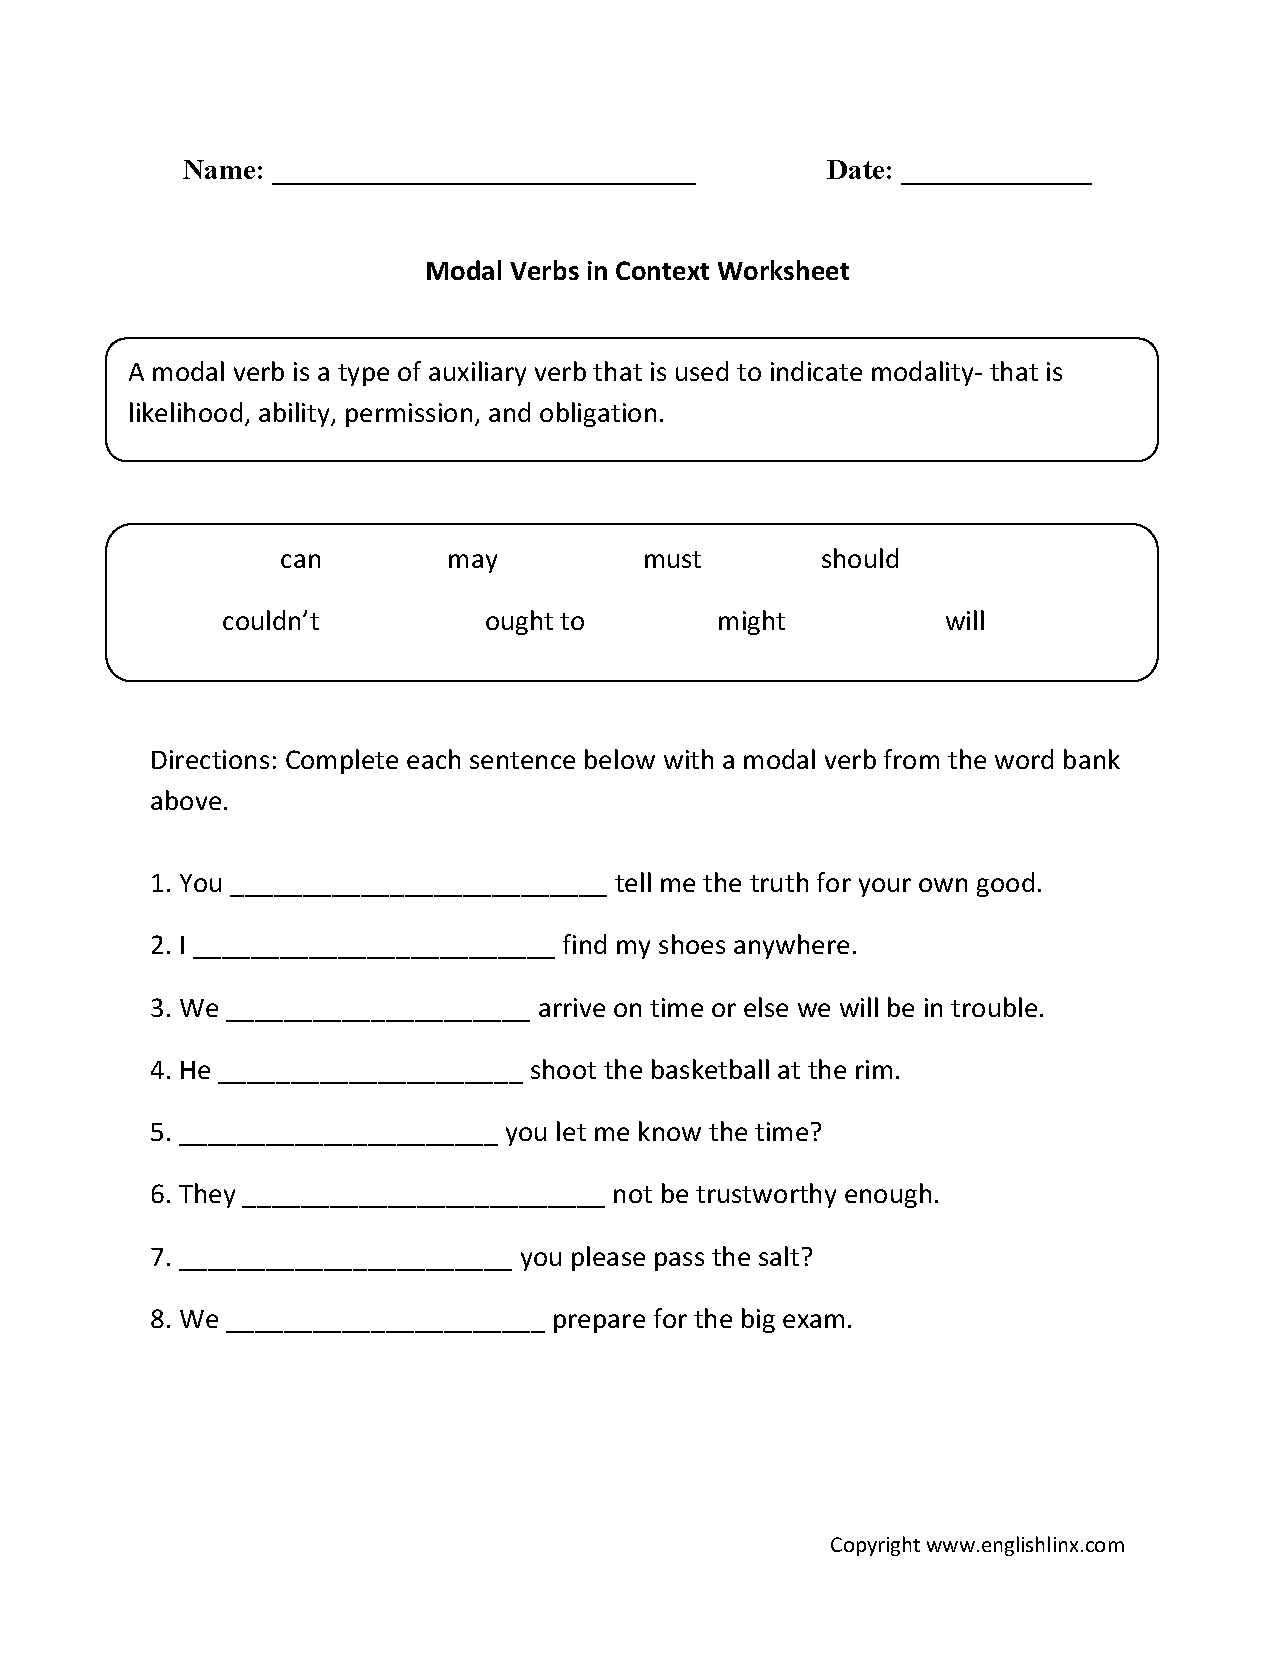 Aldiablosus  Surprising Worksheet On Verb  Coffemix With Foxy Englishlinxcom  Verbs Worksheets With Divine Year  Maths Worksheets Pdf Also Pre K Letter Recognition Worksheets In Addition Free Printable Worksheets For Grade  Of English And Multiplication Facts Practice Worksheets As Well As Ordering Paragraphs Worksheet Additionally Plus  Math Worksheets From Coffemixcom With Aldiablosus  Foxy Worksheet On Verb  Coffemix With Divine Englishlinxcom  Verbs Worksheets And Surprising Year  Maths Worksheets Pdf Also Pre K Letter Recognition Worksheets In Addition Free Printable Worksheets For Grade  Of English From Coffemixcom